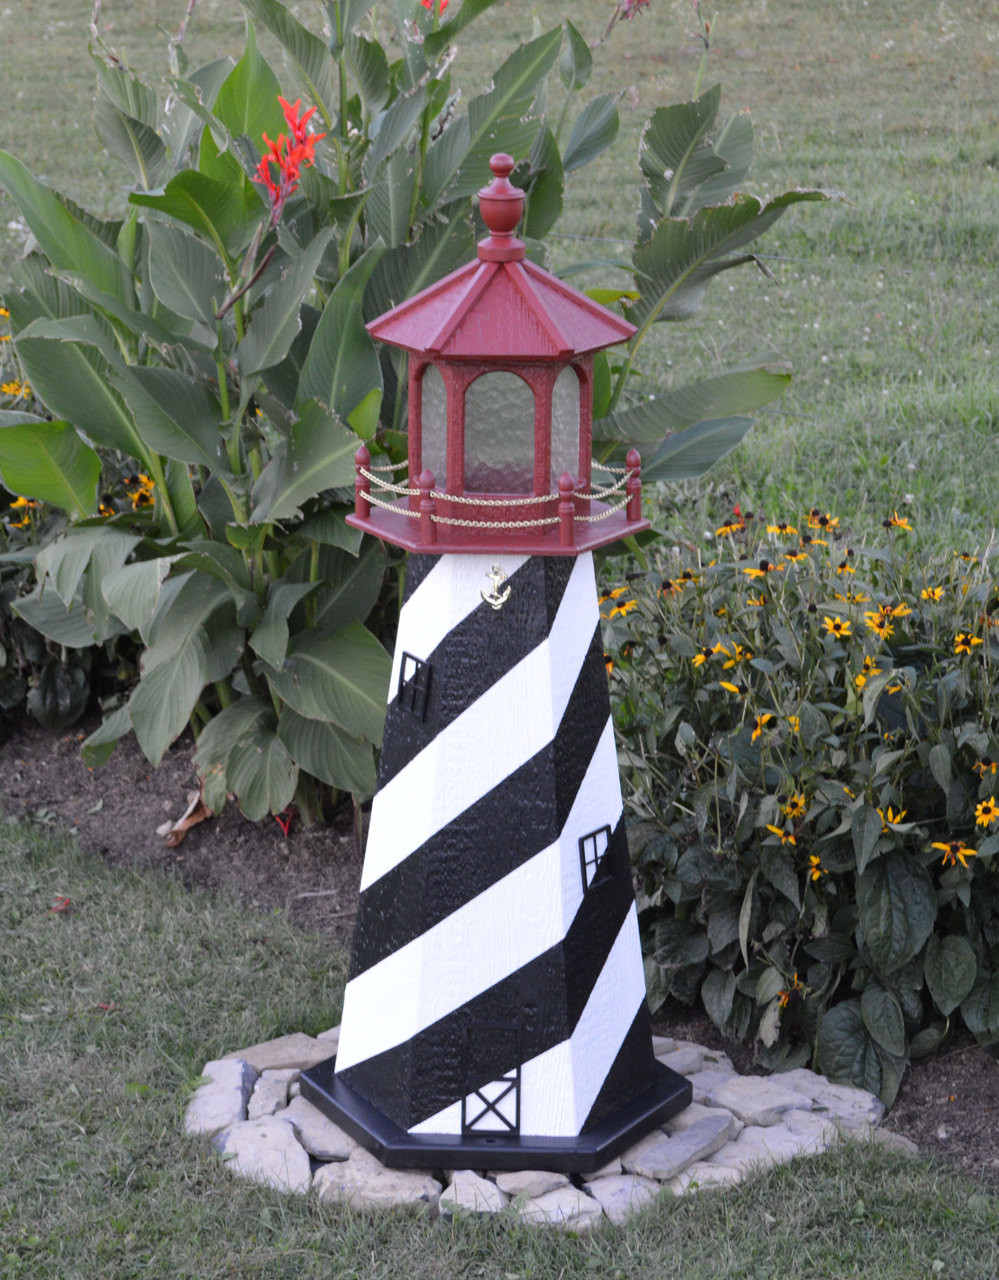 Amish Made Wood Garden Lighthouse - St. Augustine on amish christmas decor, amish gardening tips, amish well covers, amish hutch plans, amish toys, amish duck houses, amish gifts, amish hay equipment, amish tractors, amish wooden garages, amish stoneware, amish fence posts, amish animals, amish plates, amish dinnerware, amish garage plans, amish tools, amish garden wagon, amish telephone booths,